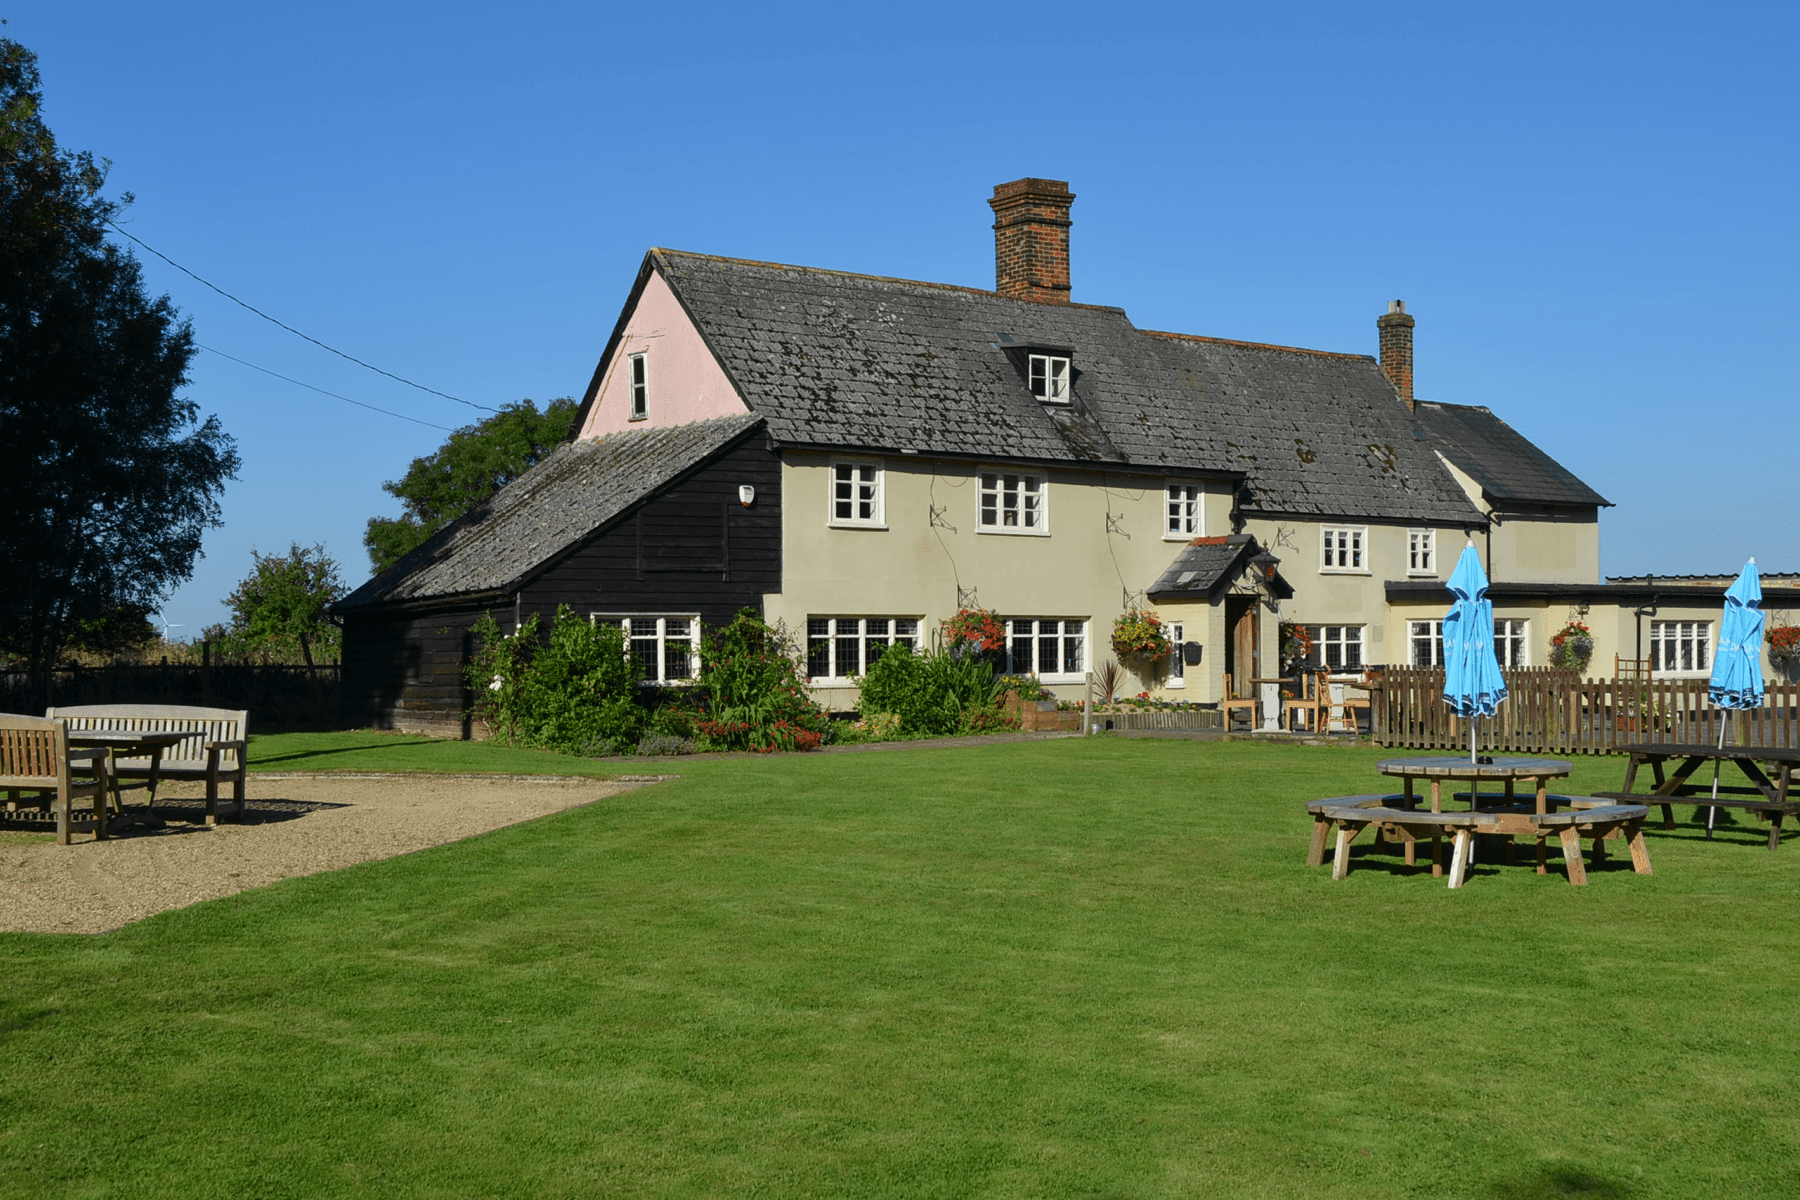 The Red Lion, Brinkley